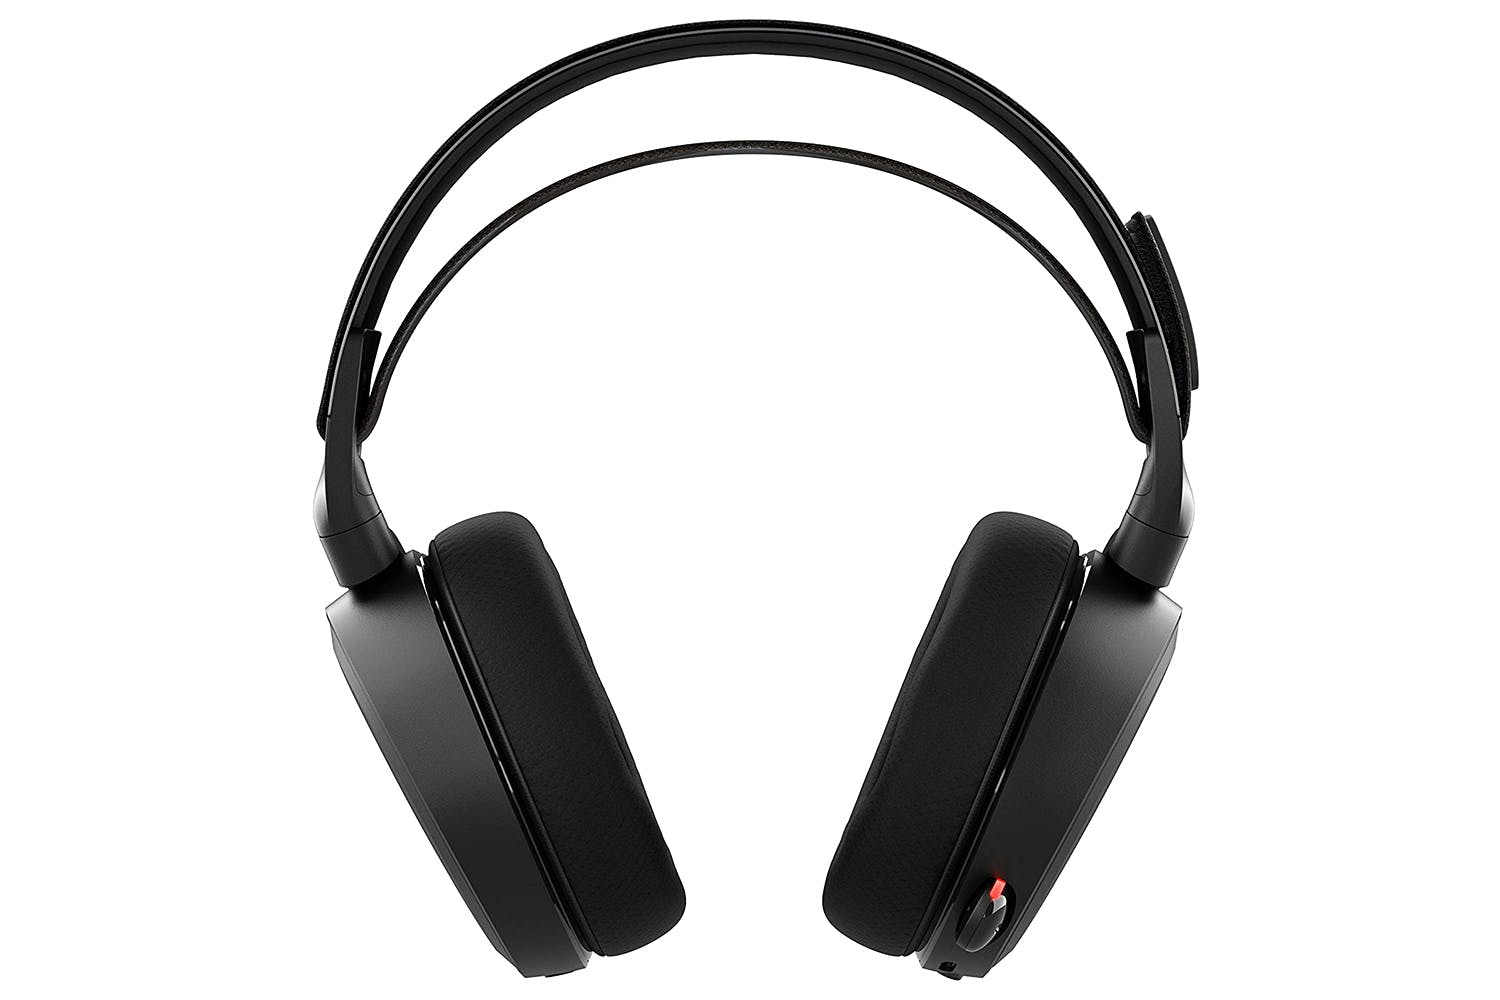 wholesale dealer a41e4 14a7c SteelSeries Arctis 7 Wireless Gaming Headset | Black